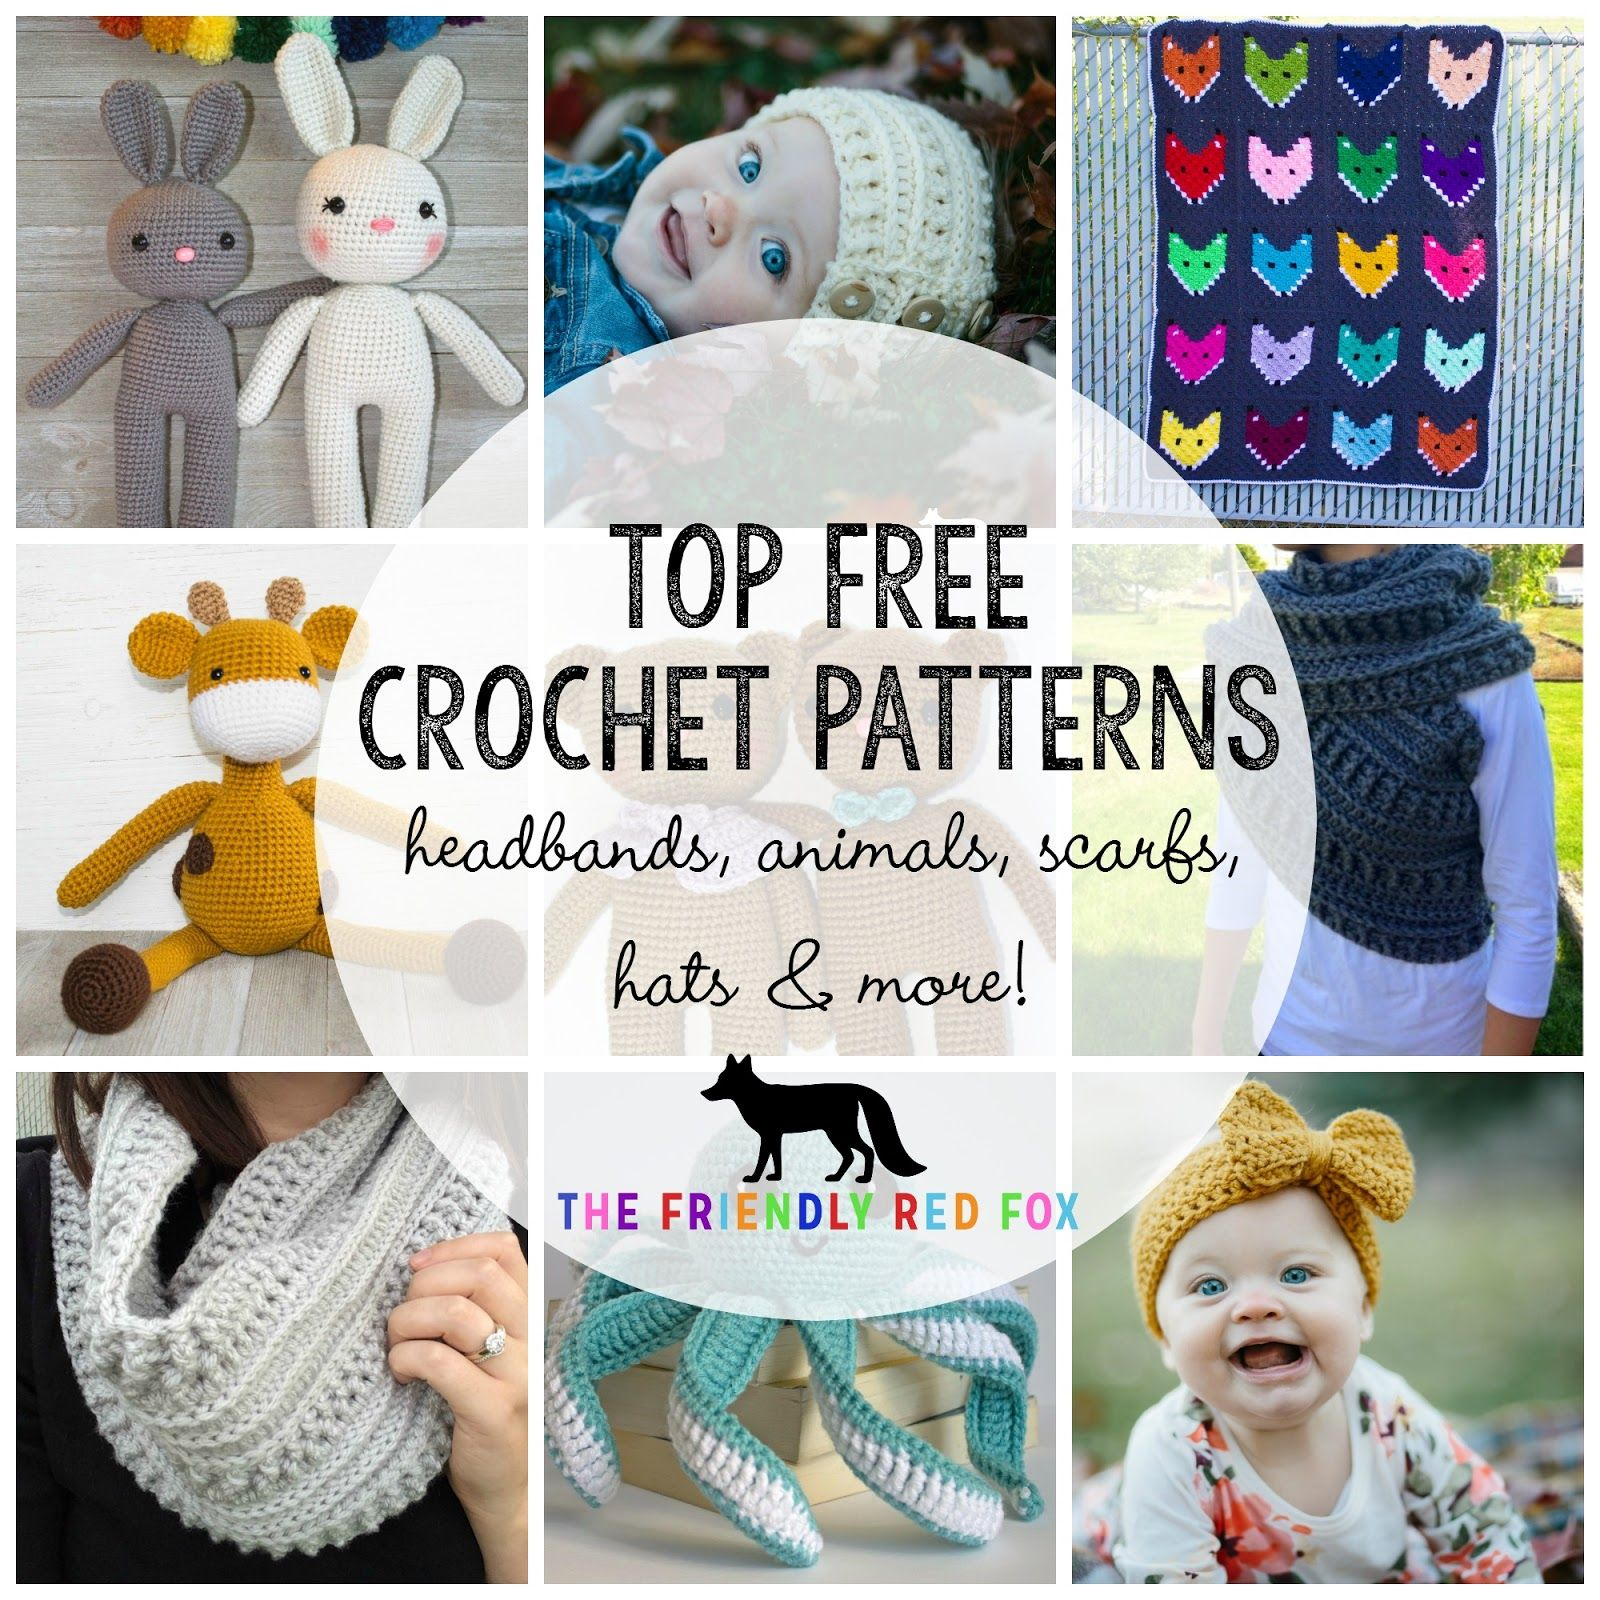 creating warmth, personality and comfort with crochet | Crochet ...